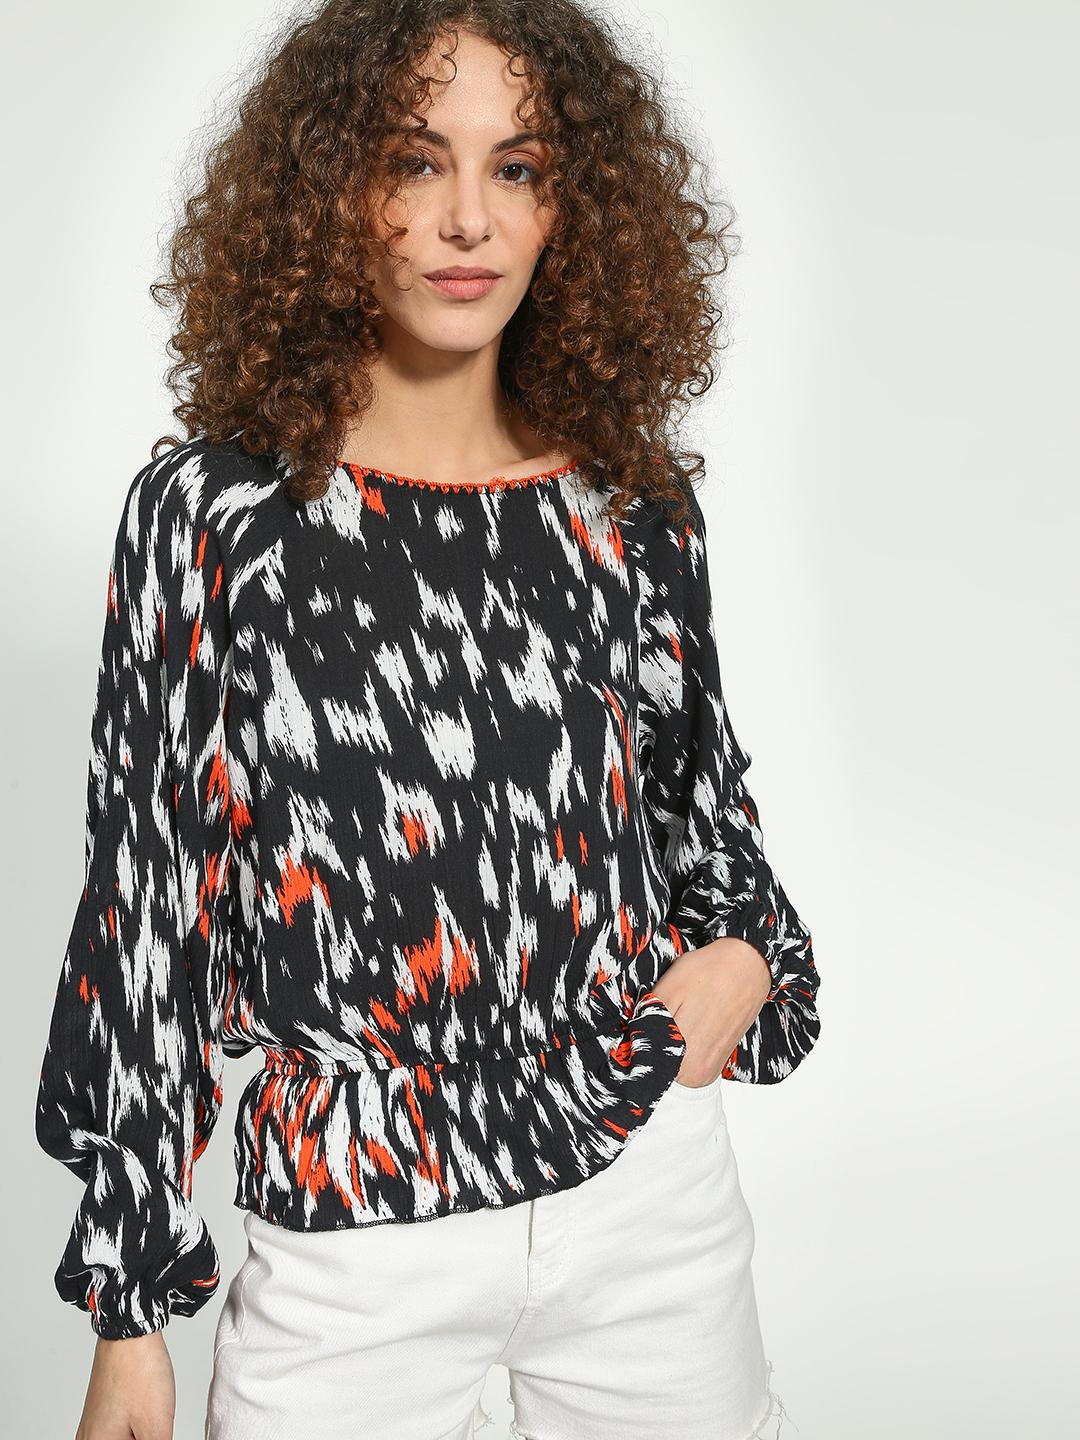 Oxolloxo Black Cinched Waist Graphic Print Blouse 1